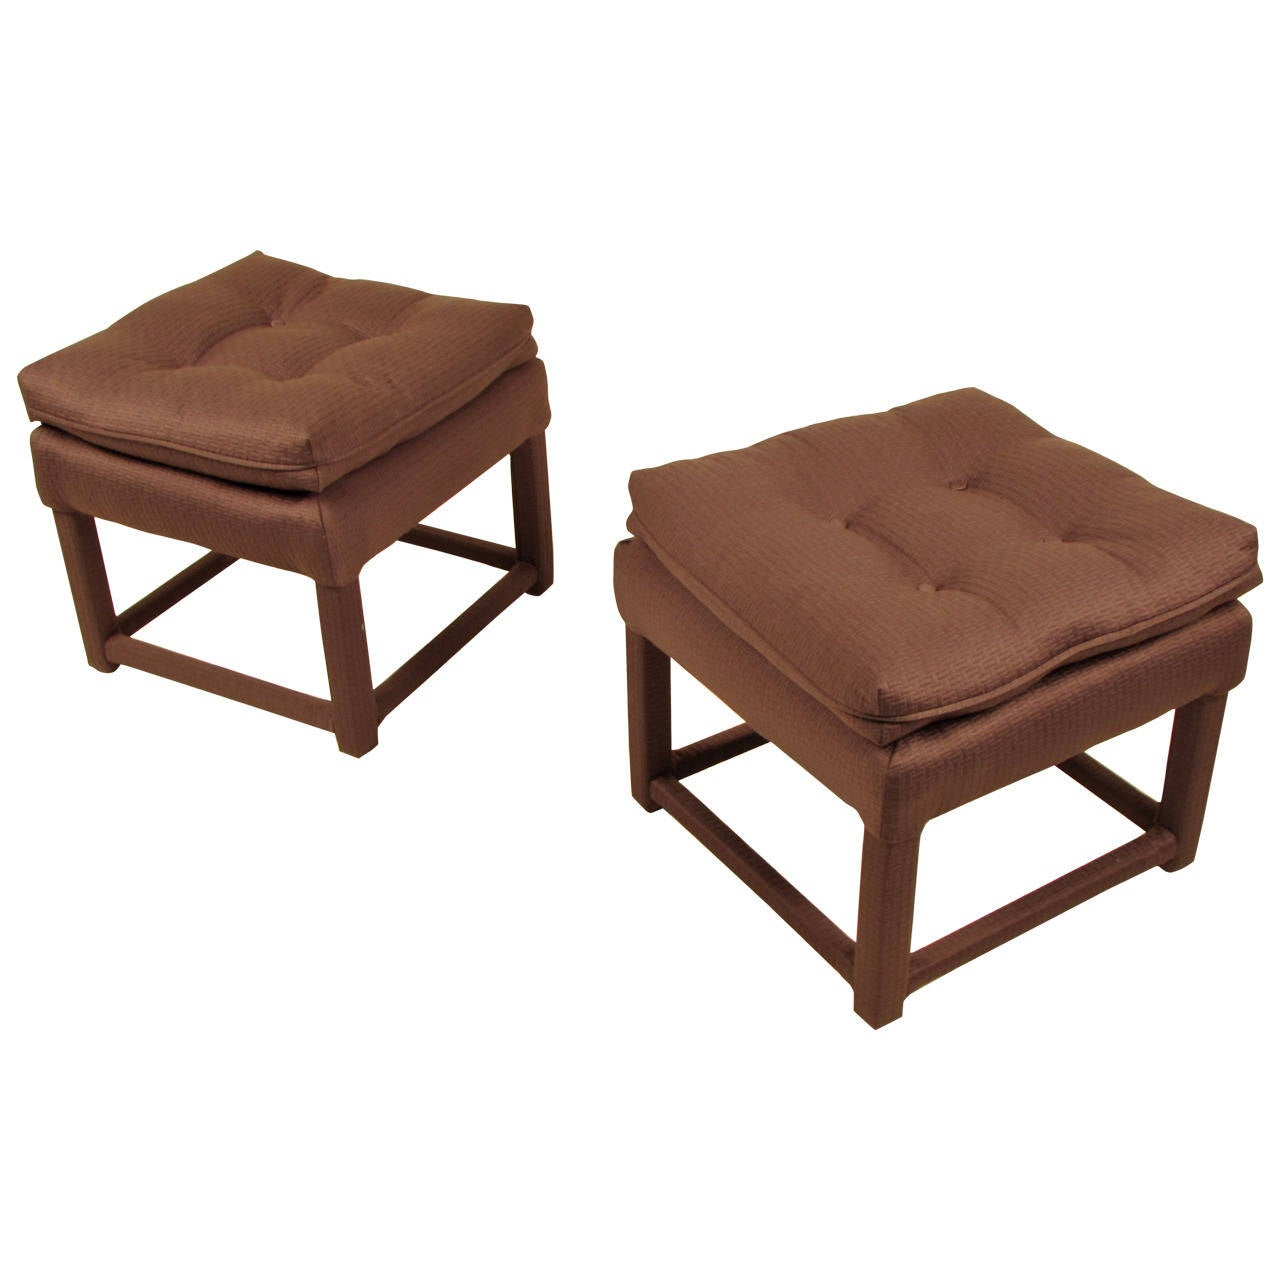 Classic Charcoal Gray Stools With Down Pillow Tops In The